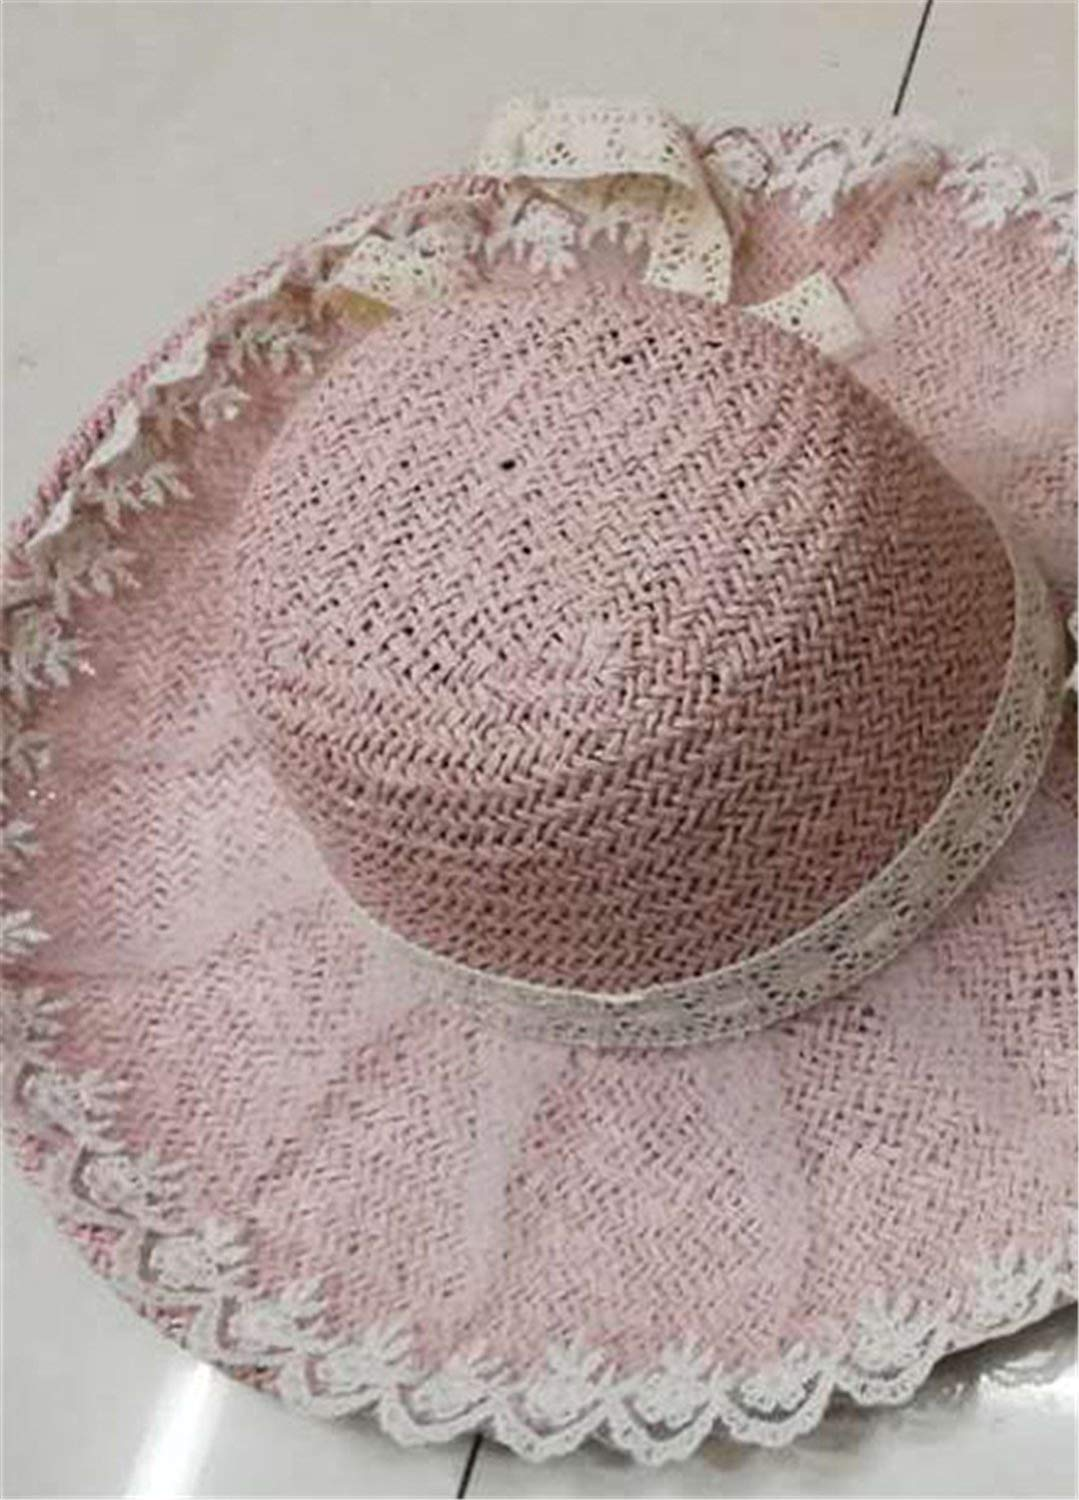 f4c348c3d8176 Summer Women Floppy Straw Sun Hat With Lace Bow Big Wide Brim Lace Up Caps  Beach